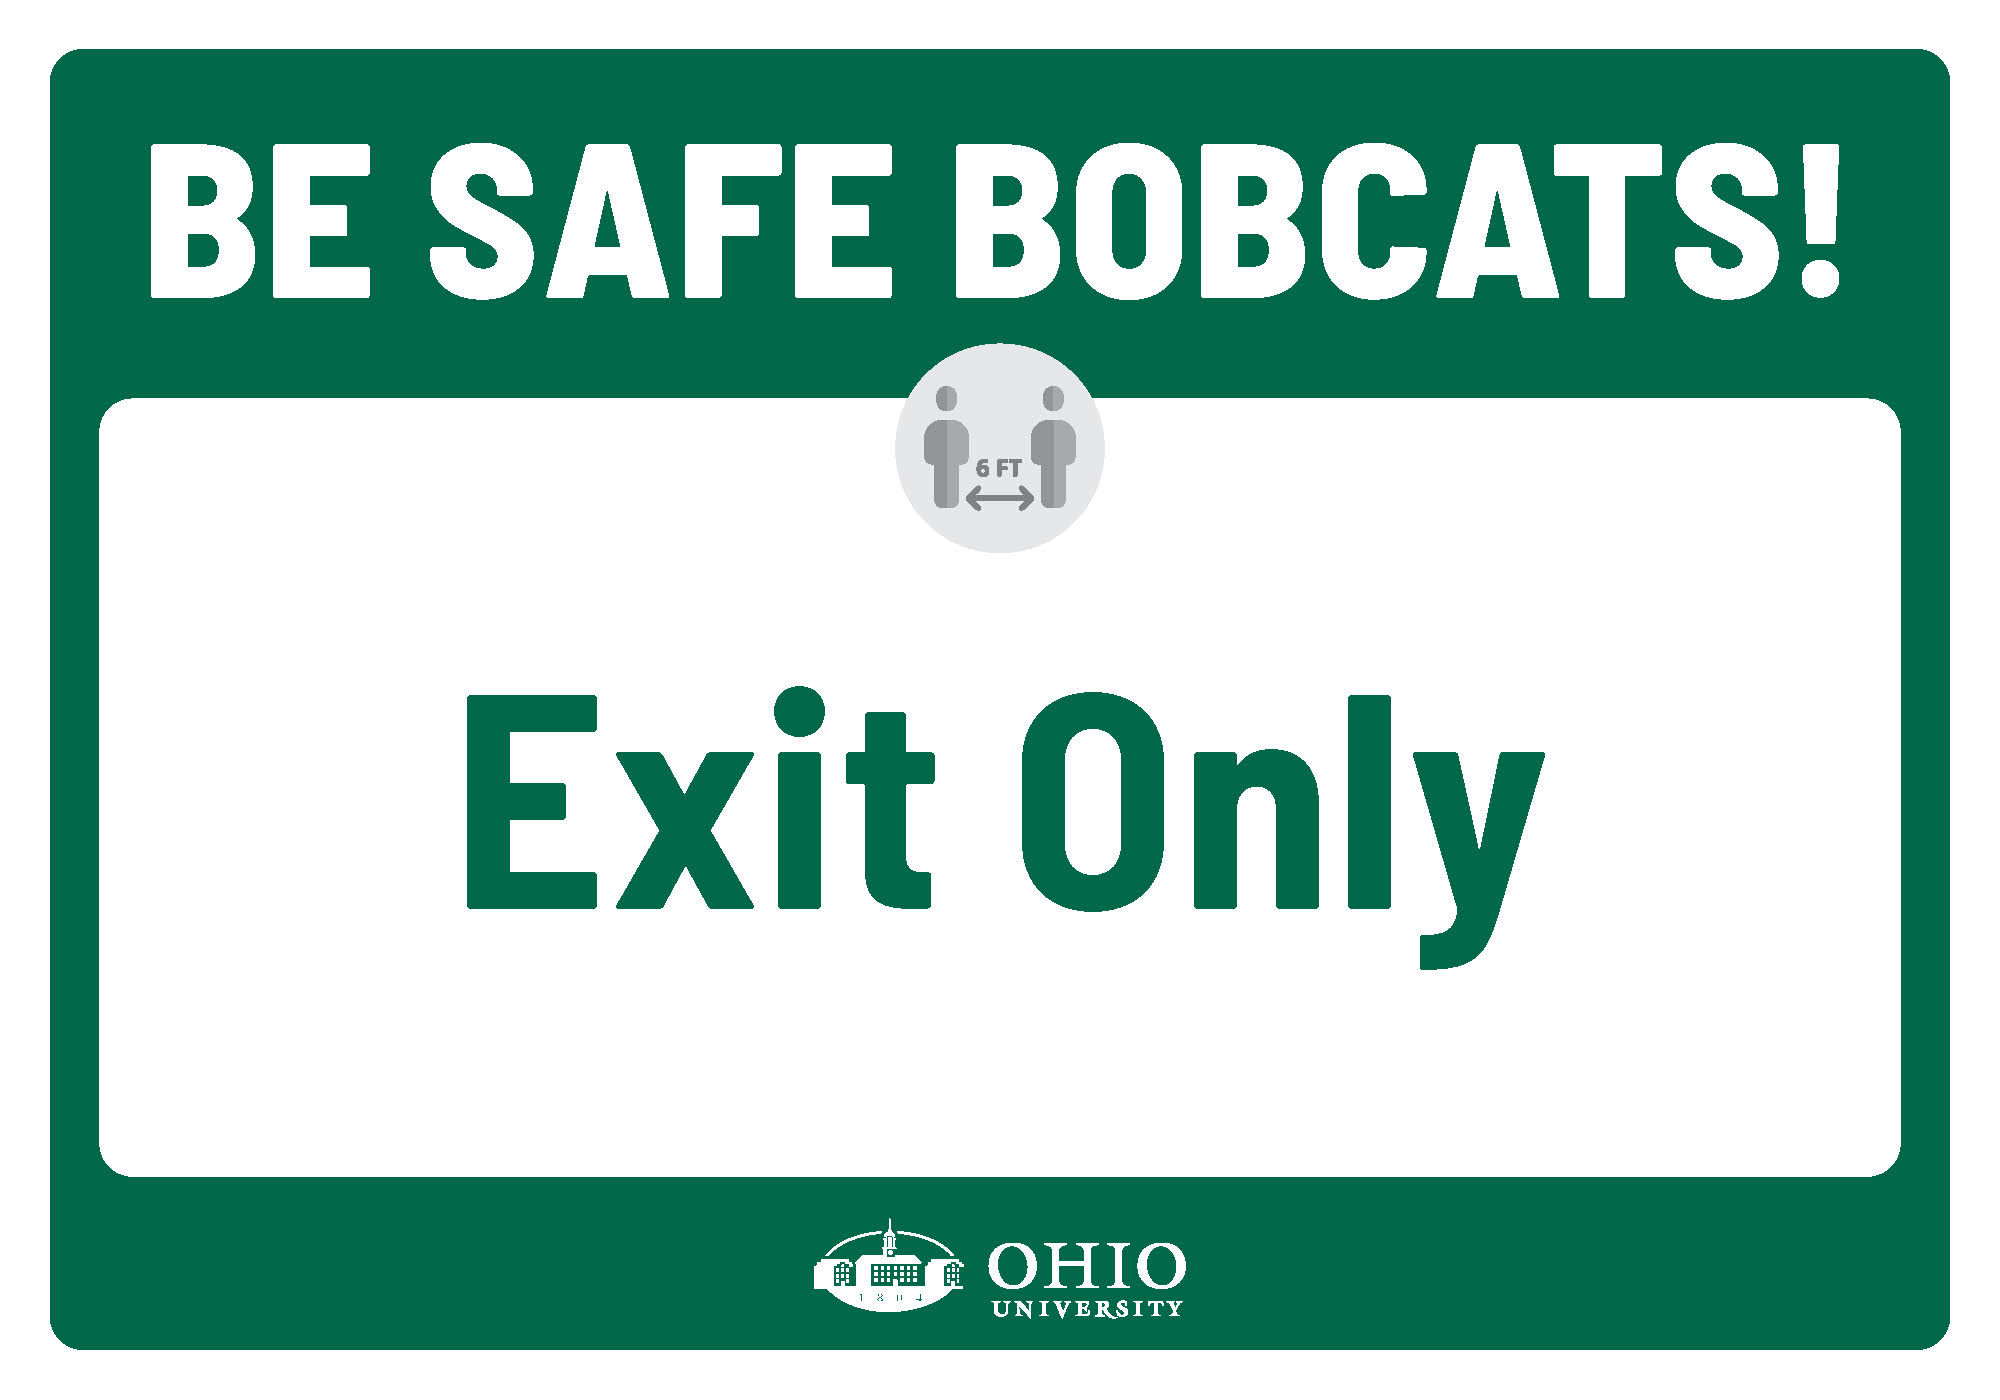 Sign that says: Be safe Bobcats! Exit only.